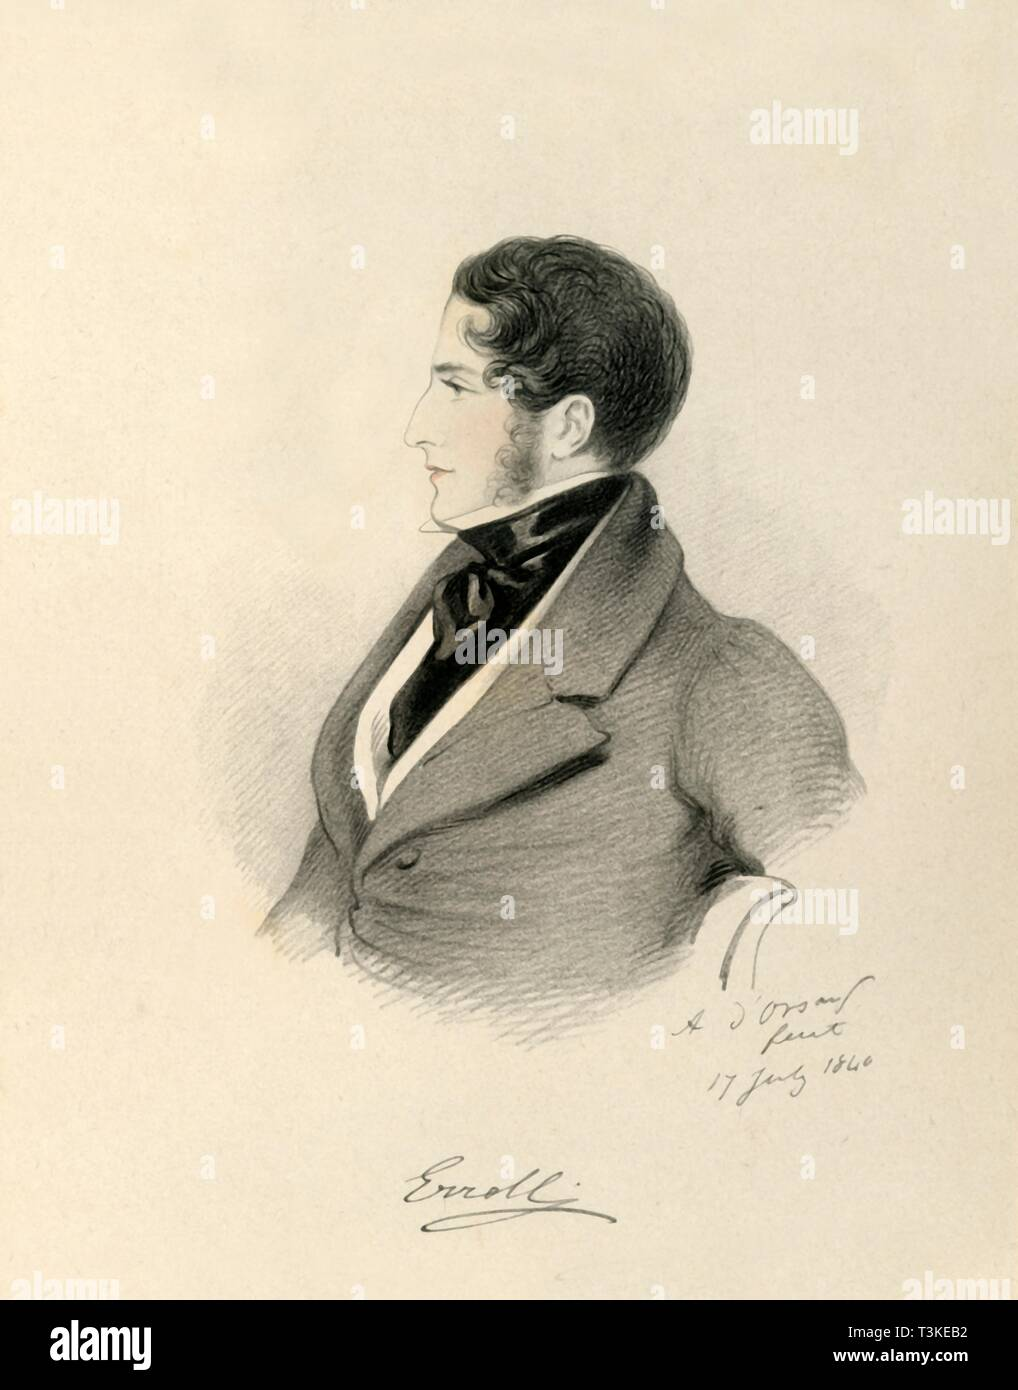 """'Erroll', 1840. Portrait of William George Hay, 18th Earl of Erroll (1801-1846), Scottish peer and politician. From """"Portraits by Count D'Orsay"""", an album assembled by Lady Georgiana Codrington. [1850s] - Stock Image"""